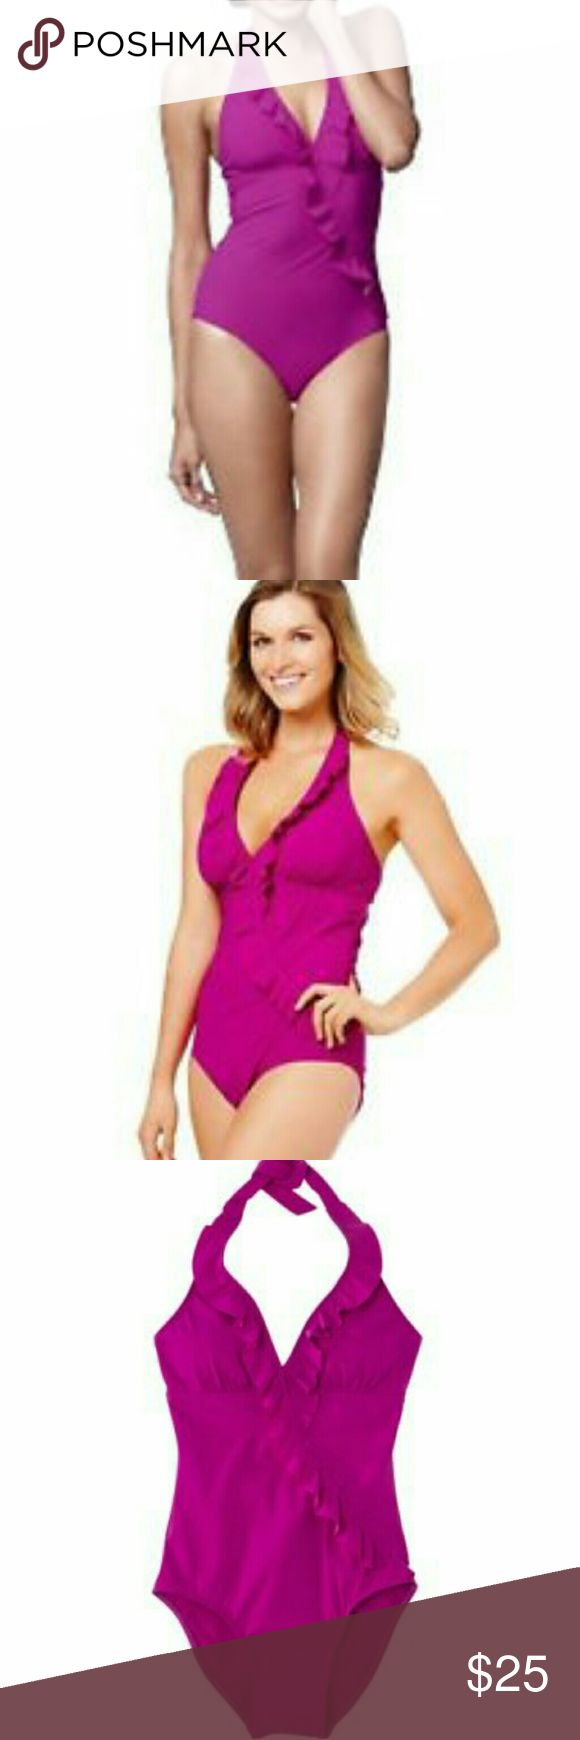 Assets by Spanx Ruffle Halter Style Swimsuit Fabulous swimsuit! Perfect for holding you in, in all the right places! Excellent condition! Has never been worn! Features:   • Halter style that ties in the back of neck  • Ruffle V-Neckline   • Full butt coverage  • Fully lined with power mesh for all around slimming  • Assets by Sara Blakely, Spanx Assets By Spanx Swim One Pieces